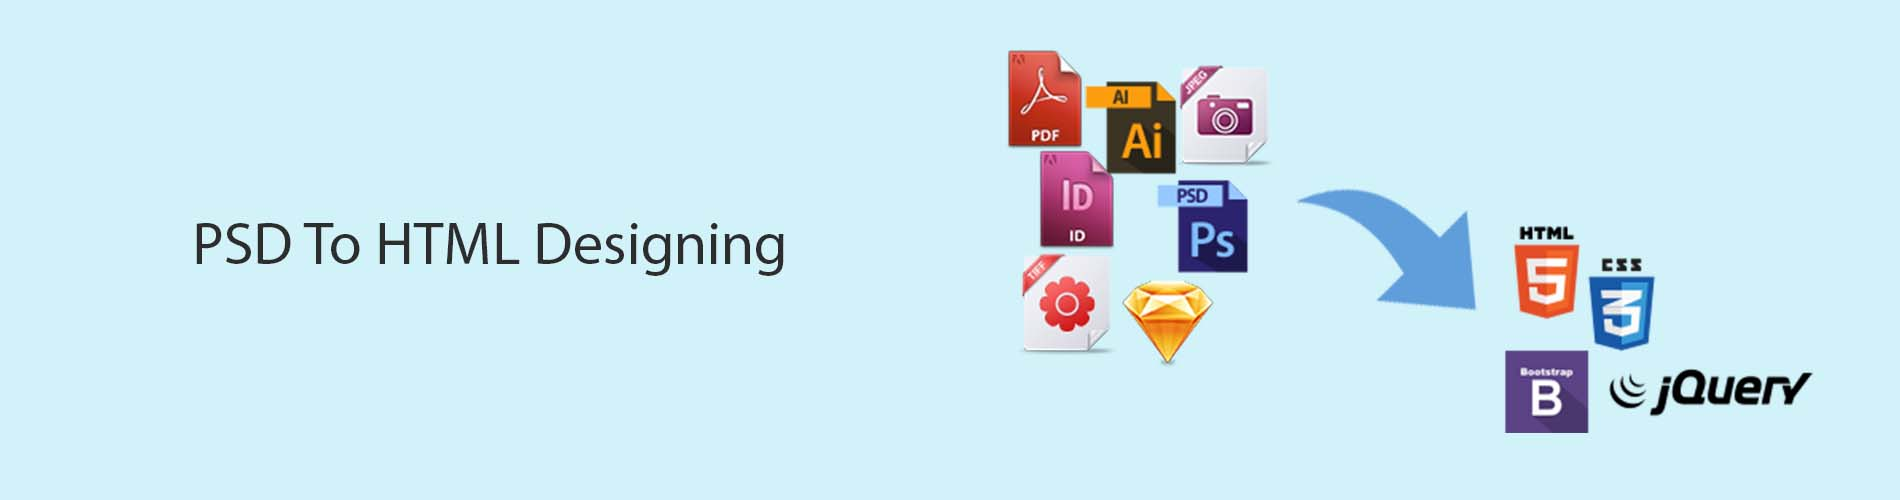 psd-to-html-designing-company